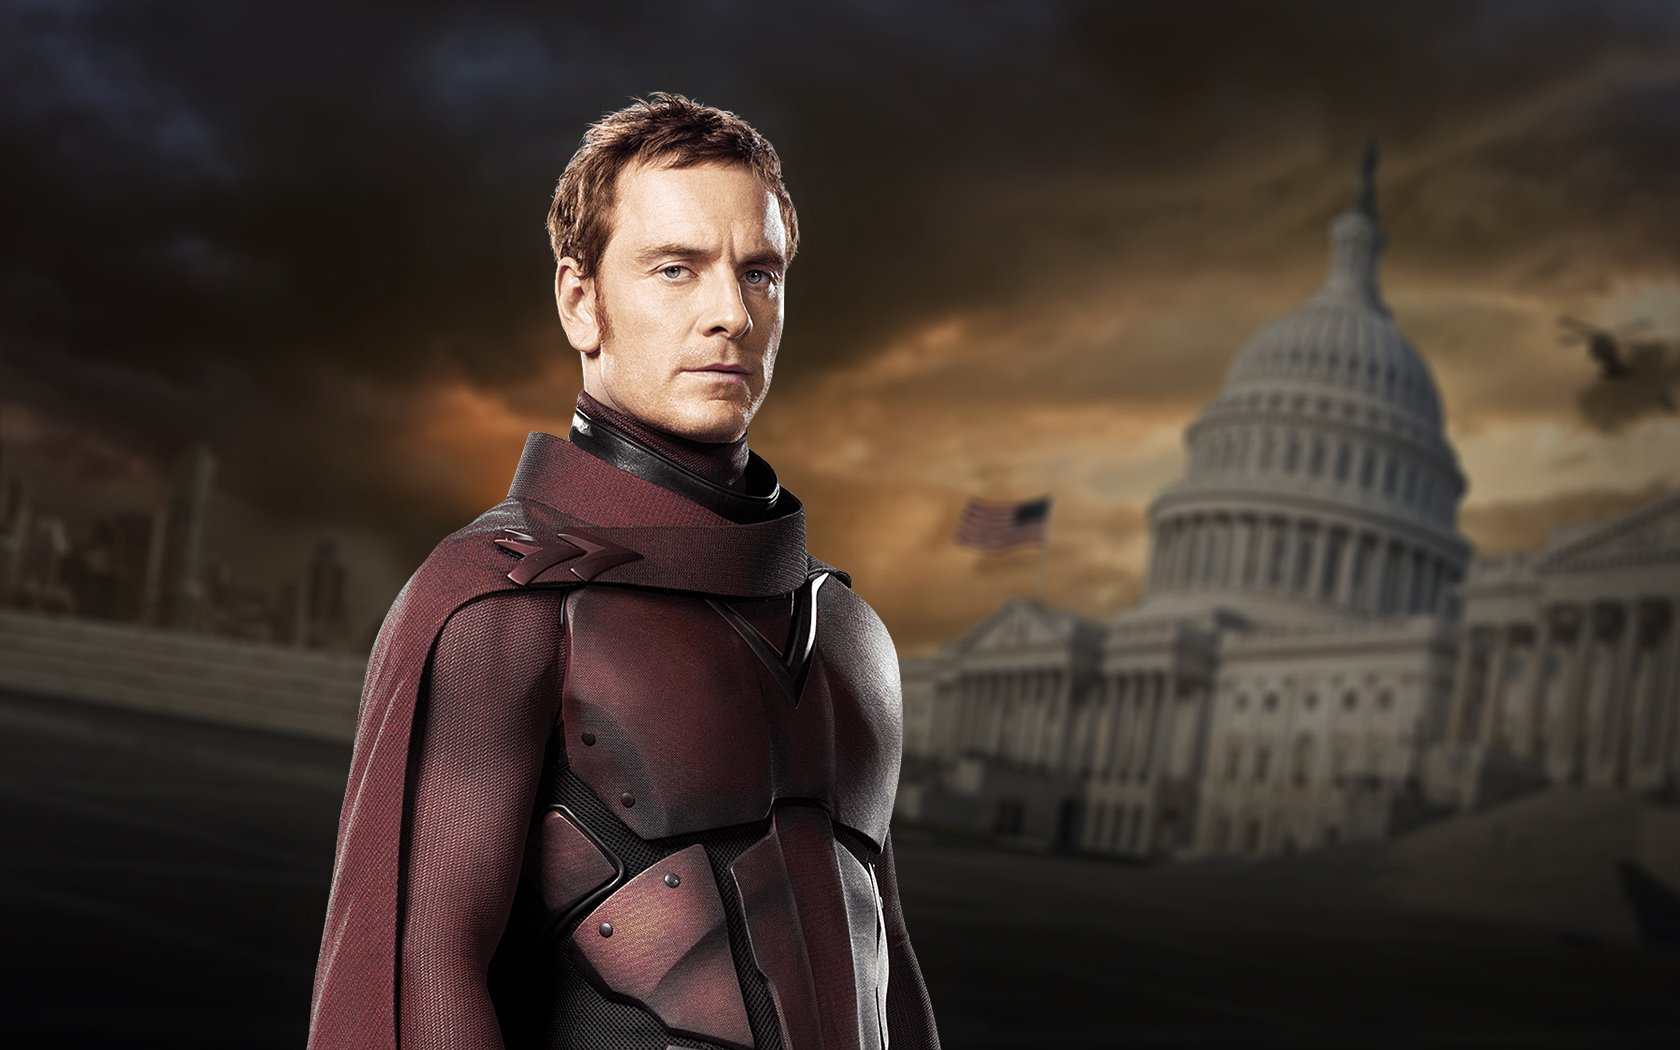 Young Magneto Played By Michael Fassbender Wallpaper and 1680x1050